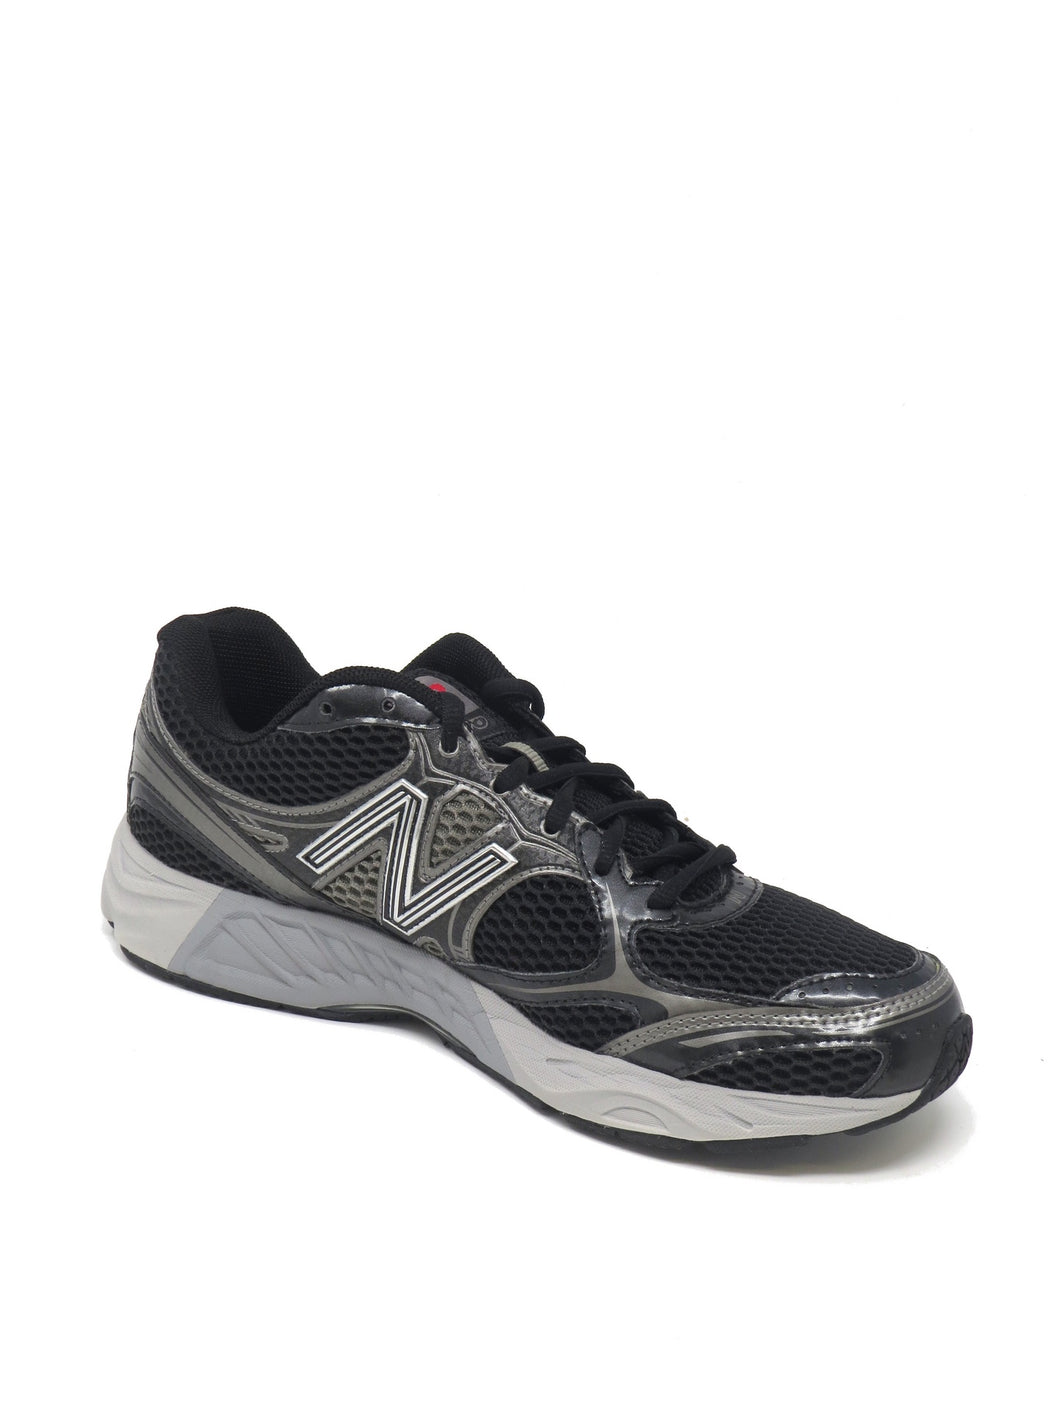 New Balance | MR770BK | Running Shoe | Black